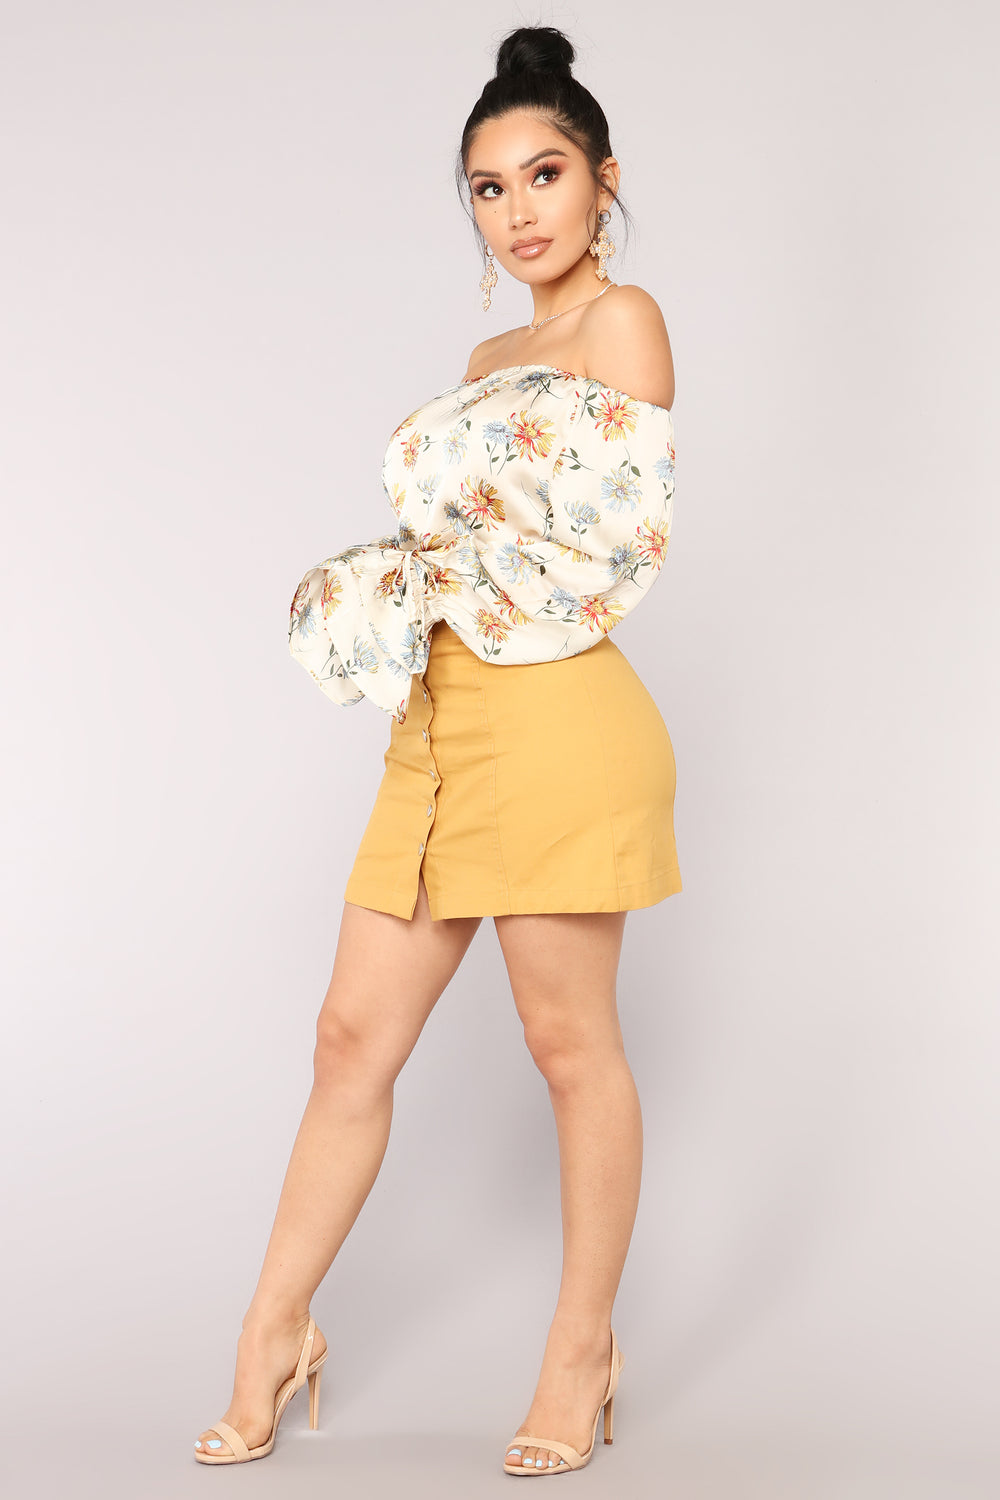 Spring Time Fever Top - Ivory/Combo